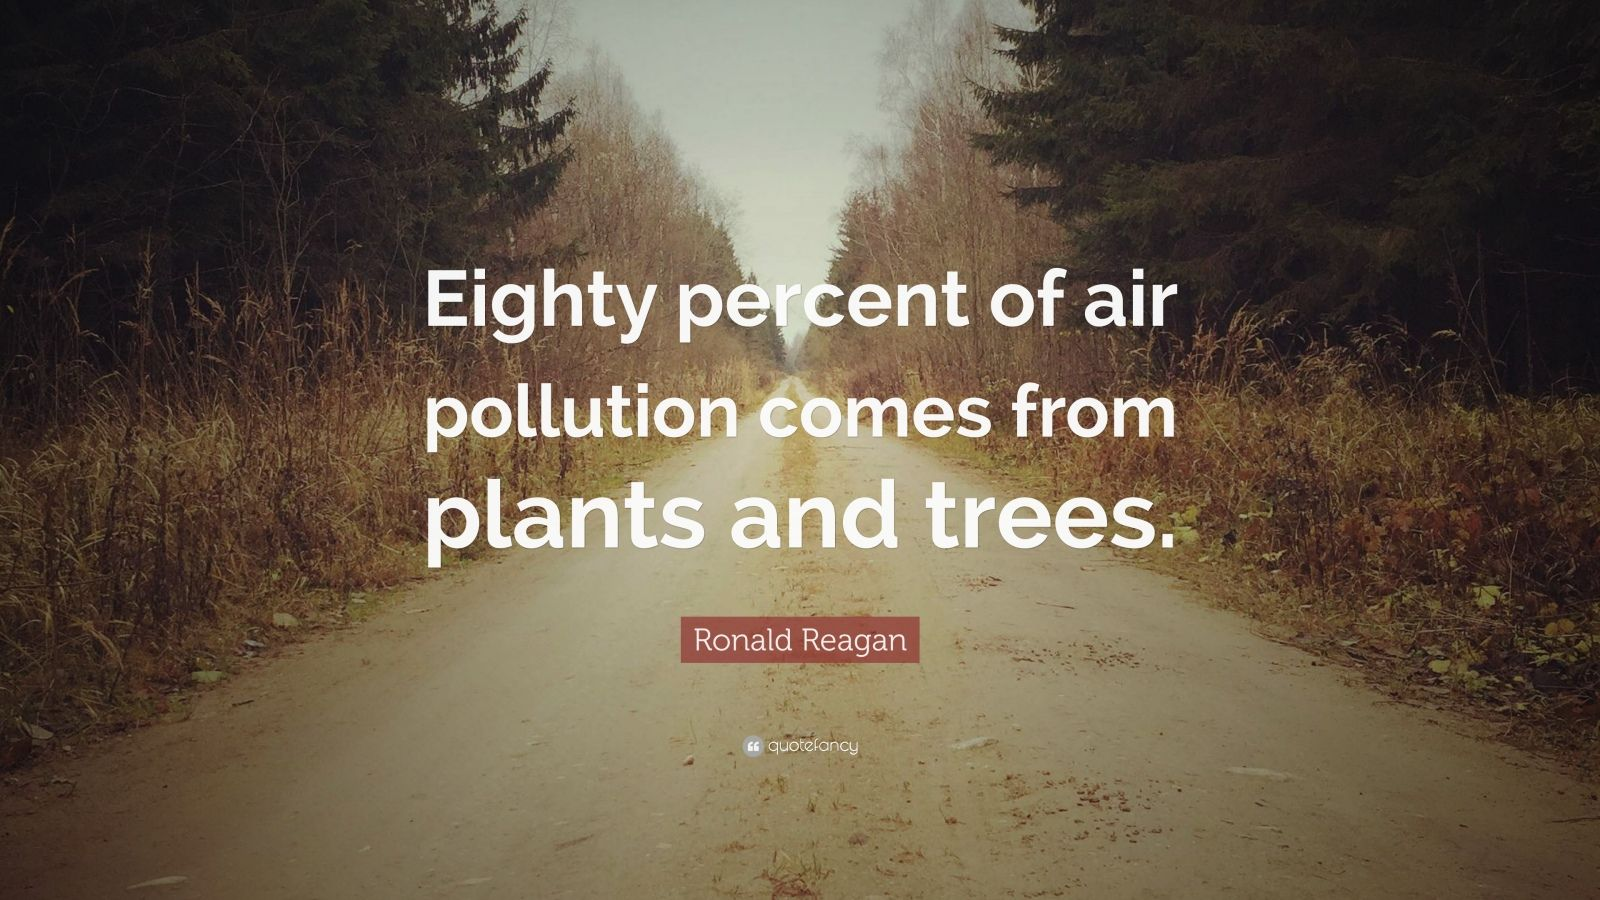 Ronald Reagan Quote Eighty Percent Of Air Pollution Comes From